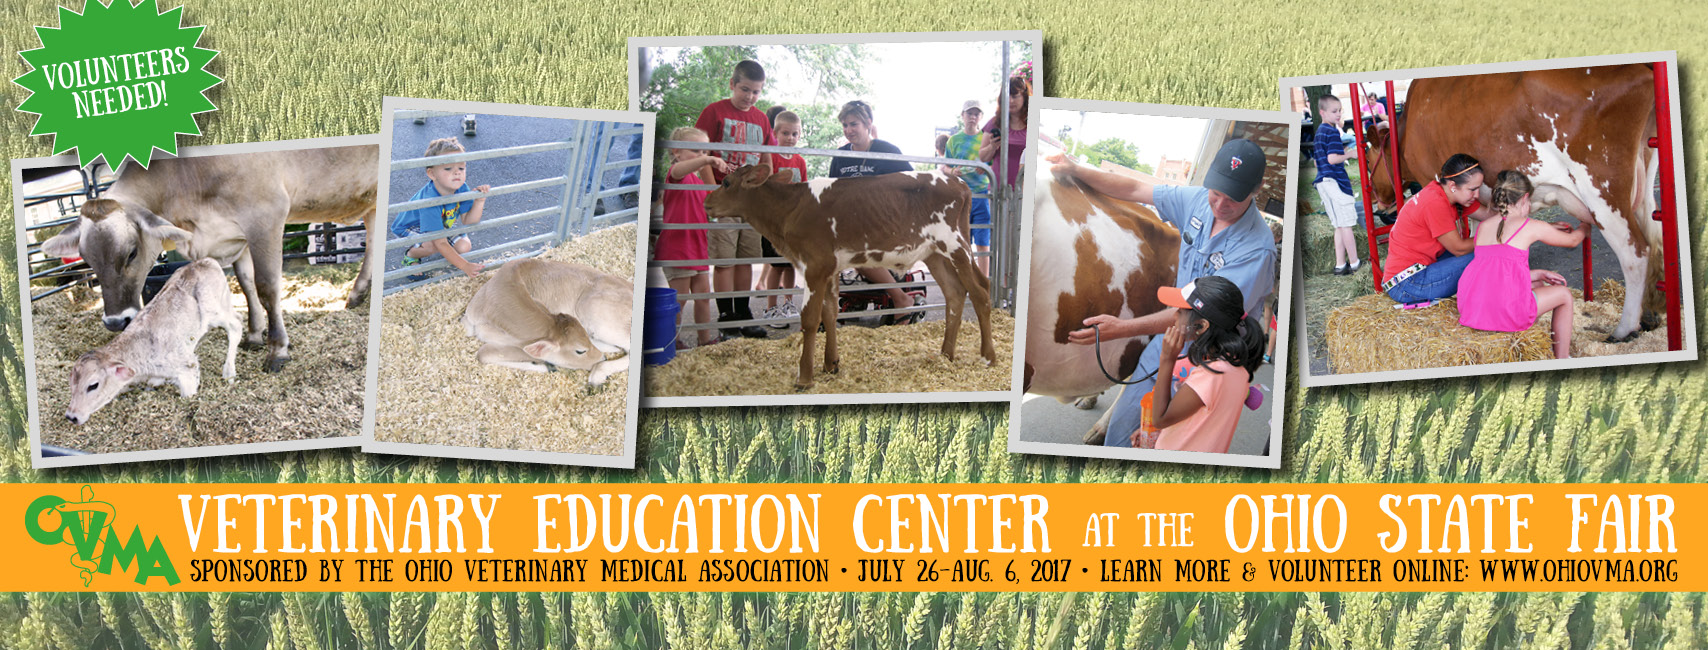 The Ovma Is Pleased To Yet Again Sponsor The Veterinary Education Center At  The Ohio State Fair This Exhibit Gives Fairgoers The Exciting Opportunity  To